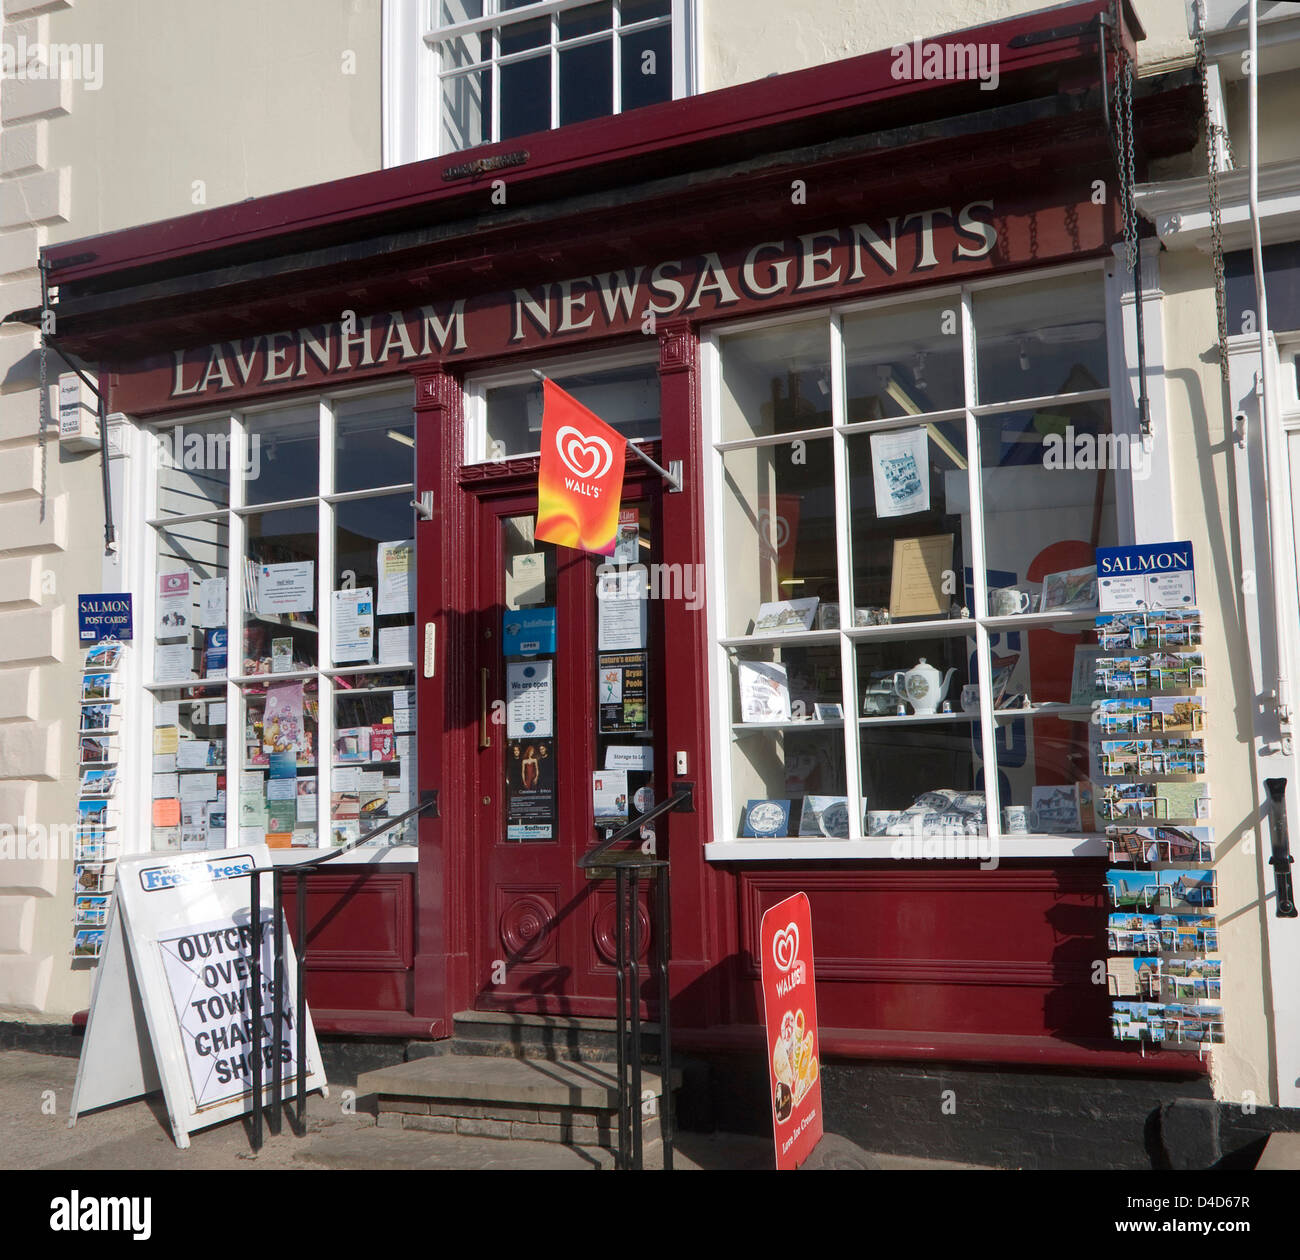 Traditional newsagents shop in Lavenham, Suffolk, England - Stock Image